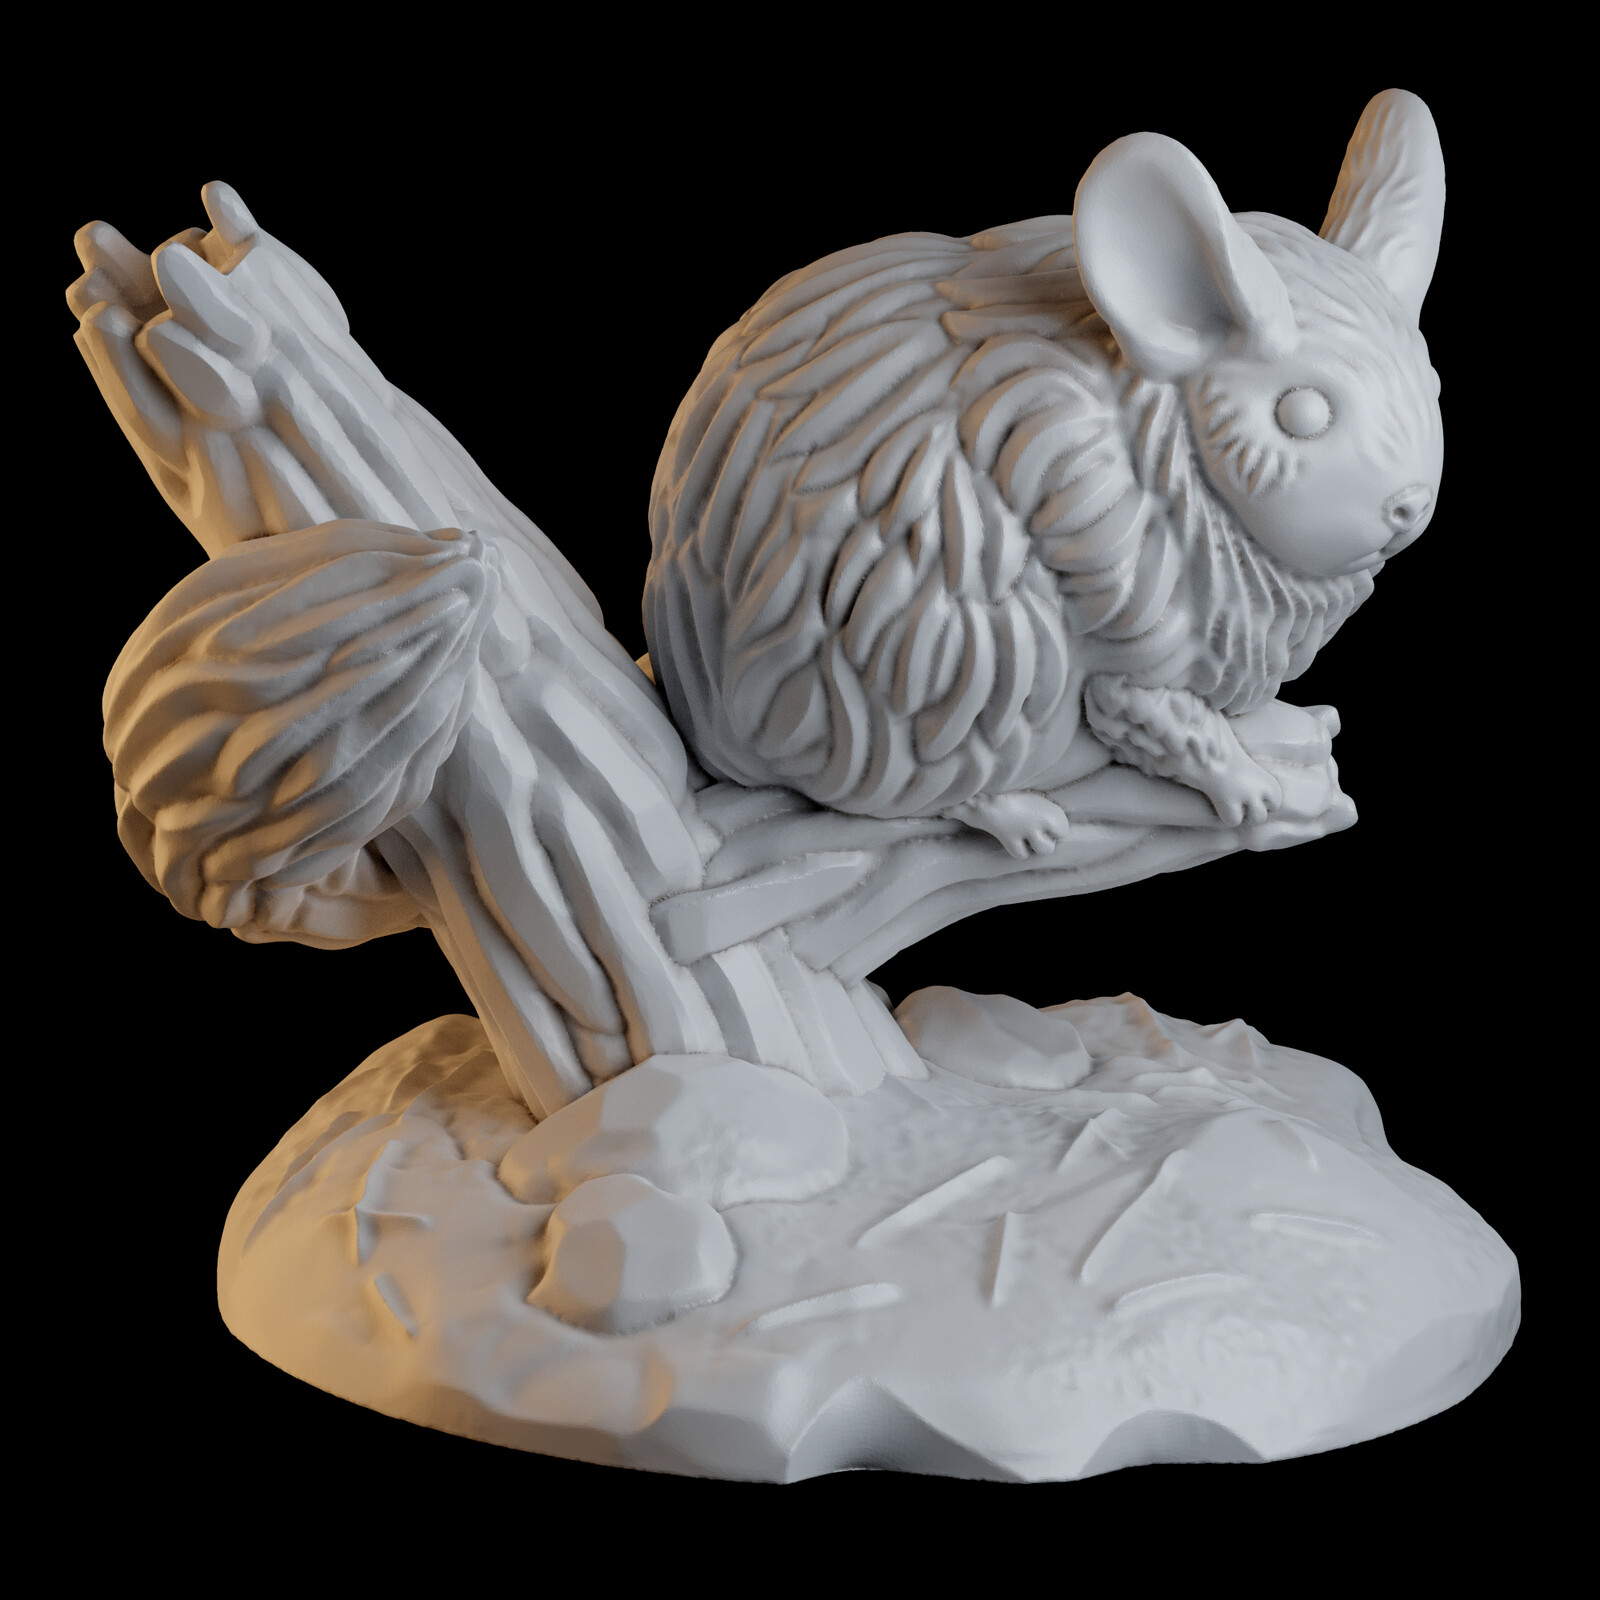 Fateforge: Chinchilla Miniature